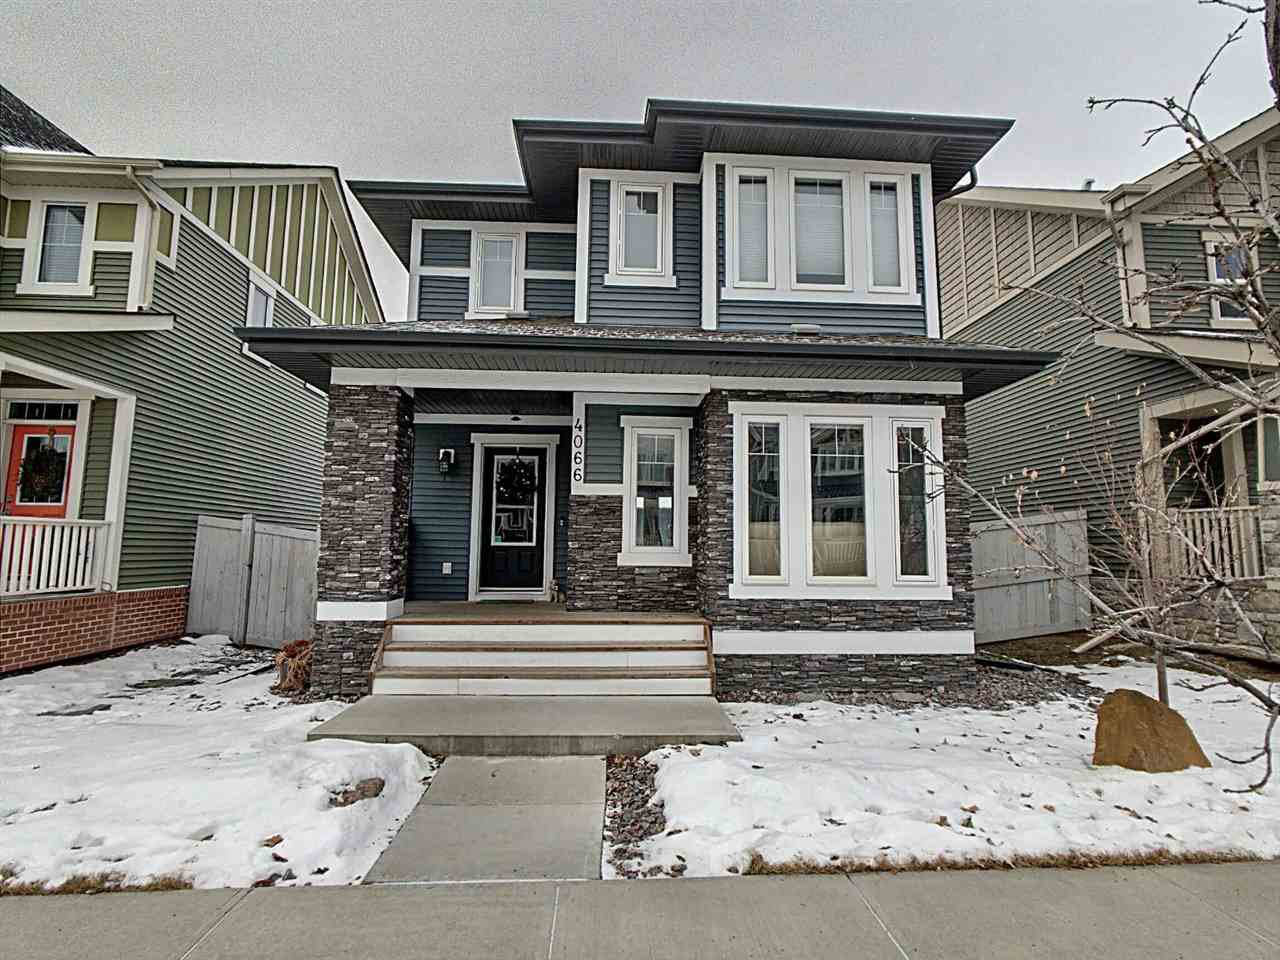 Main Photo: 4066 MORRISON Way in Edmonton: Zone 27 House for sale : MLS®# E4223156